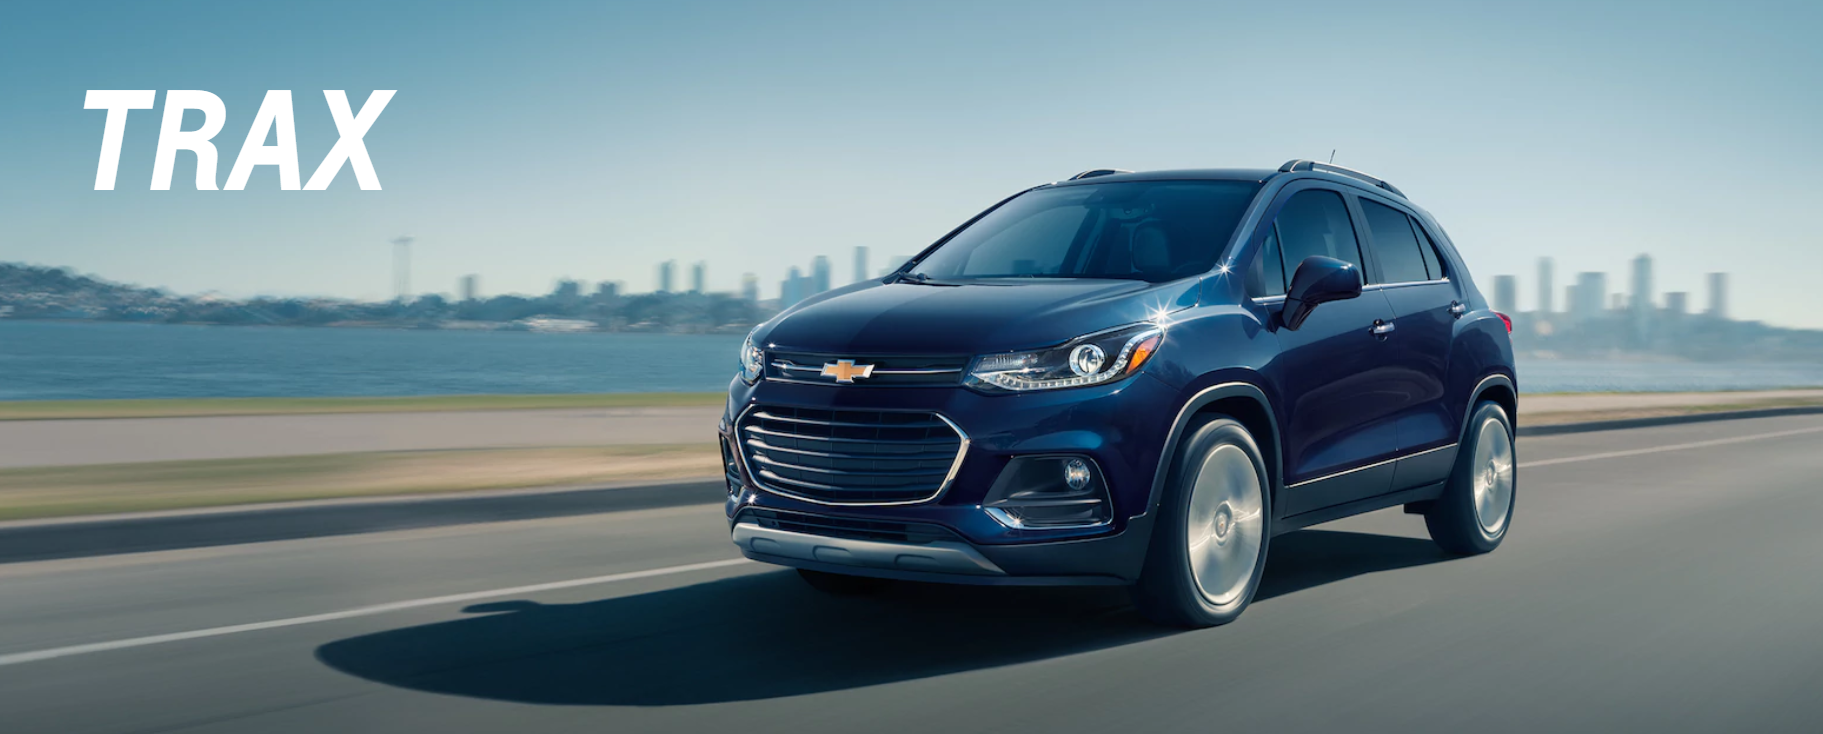 Thank You For Choosing Champion Chevrolet Of Fowlerville As Your Family  Owned Chevrolet Dealer Serving The Livingston County And Surrounding Areas.